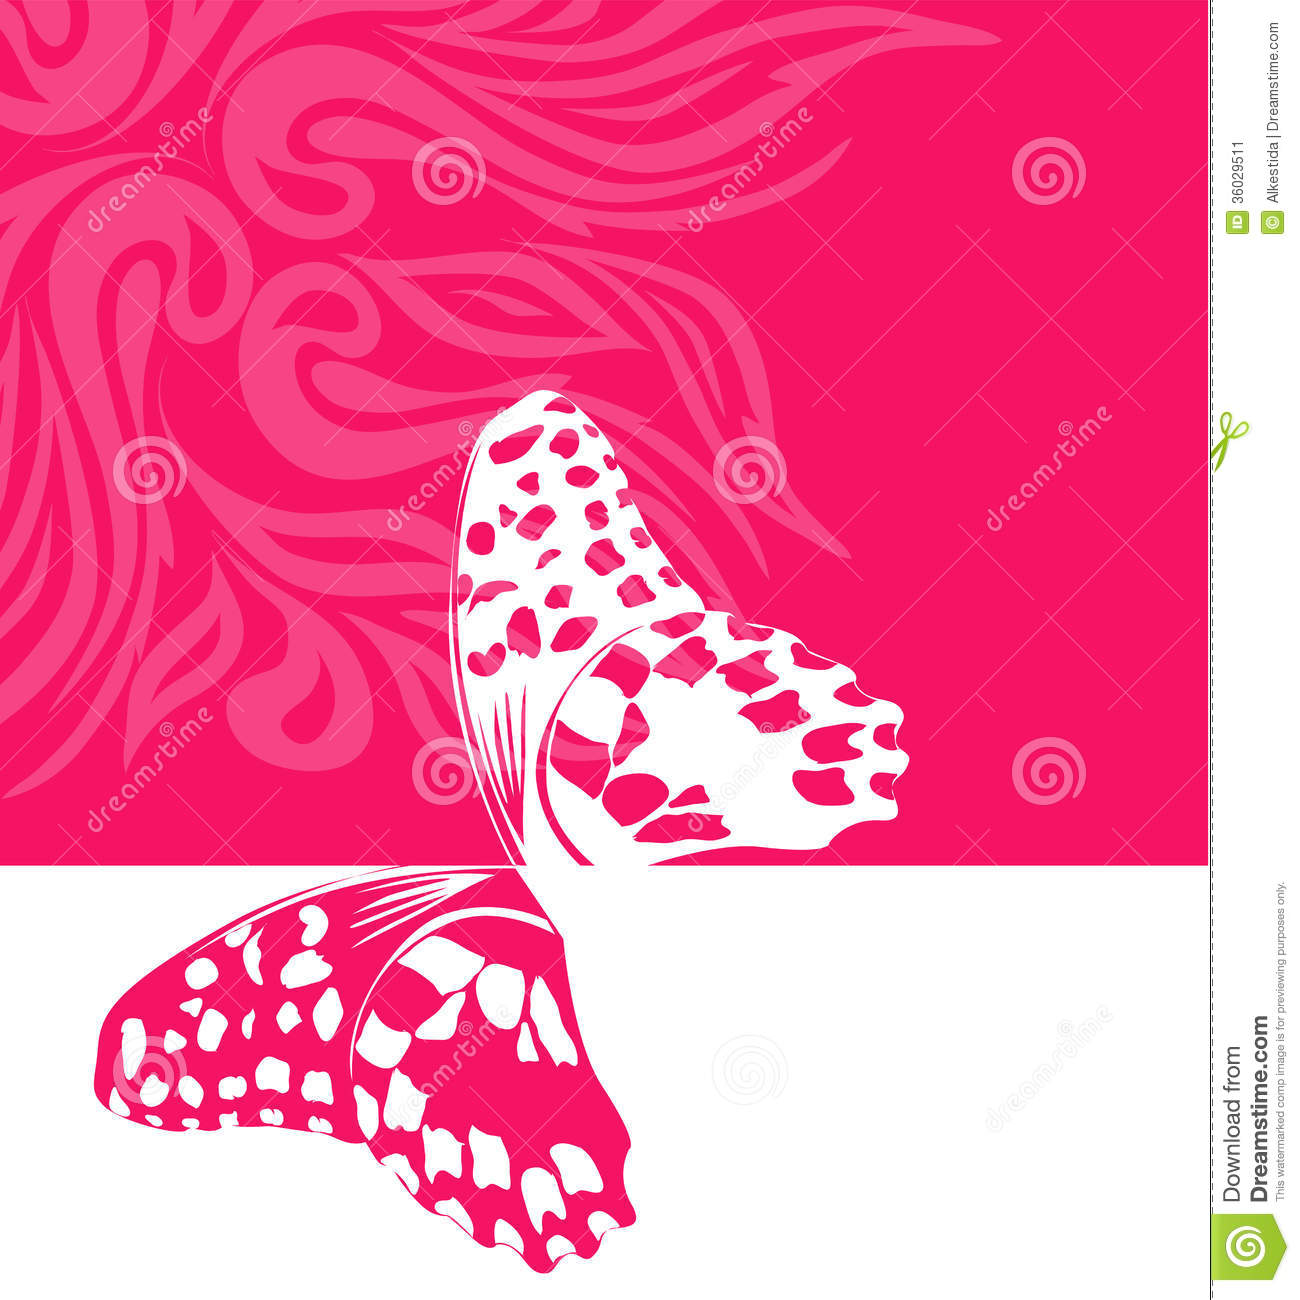 Pink butterfly vector background hd wallpapers pink butterfly vector - More Similar Stock Images Of Beautiful Pink Butterfly Background Texture